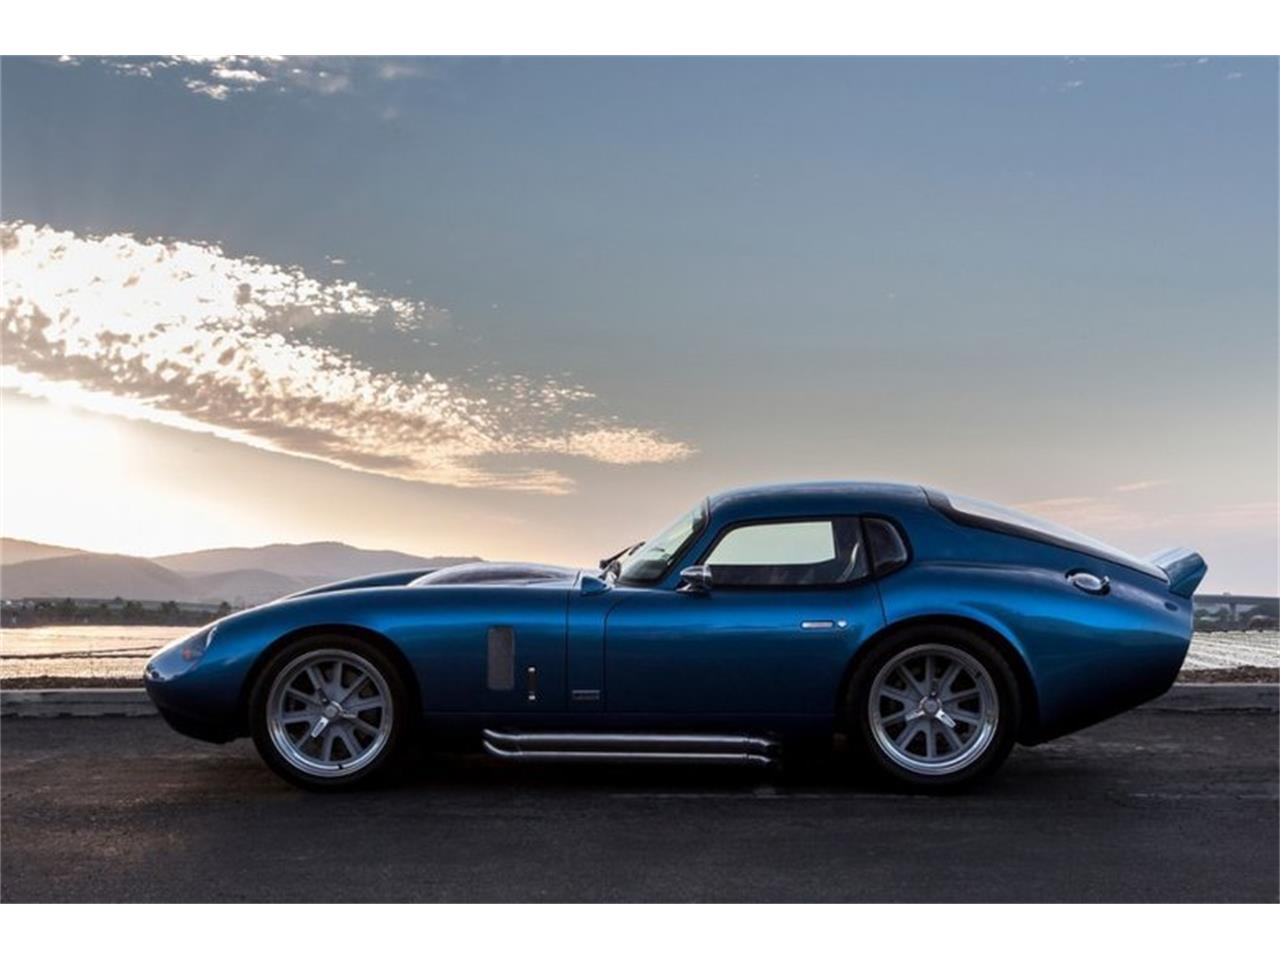 Large Picture of Classic 1964 Cobra - $395,000.00 Offered by Hillbank Motorsports - PNWD